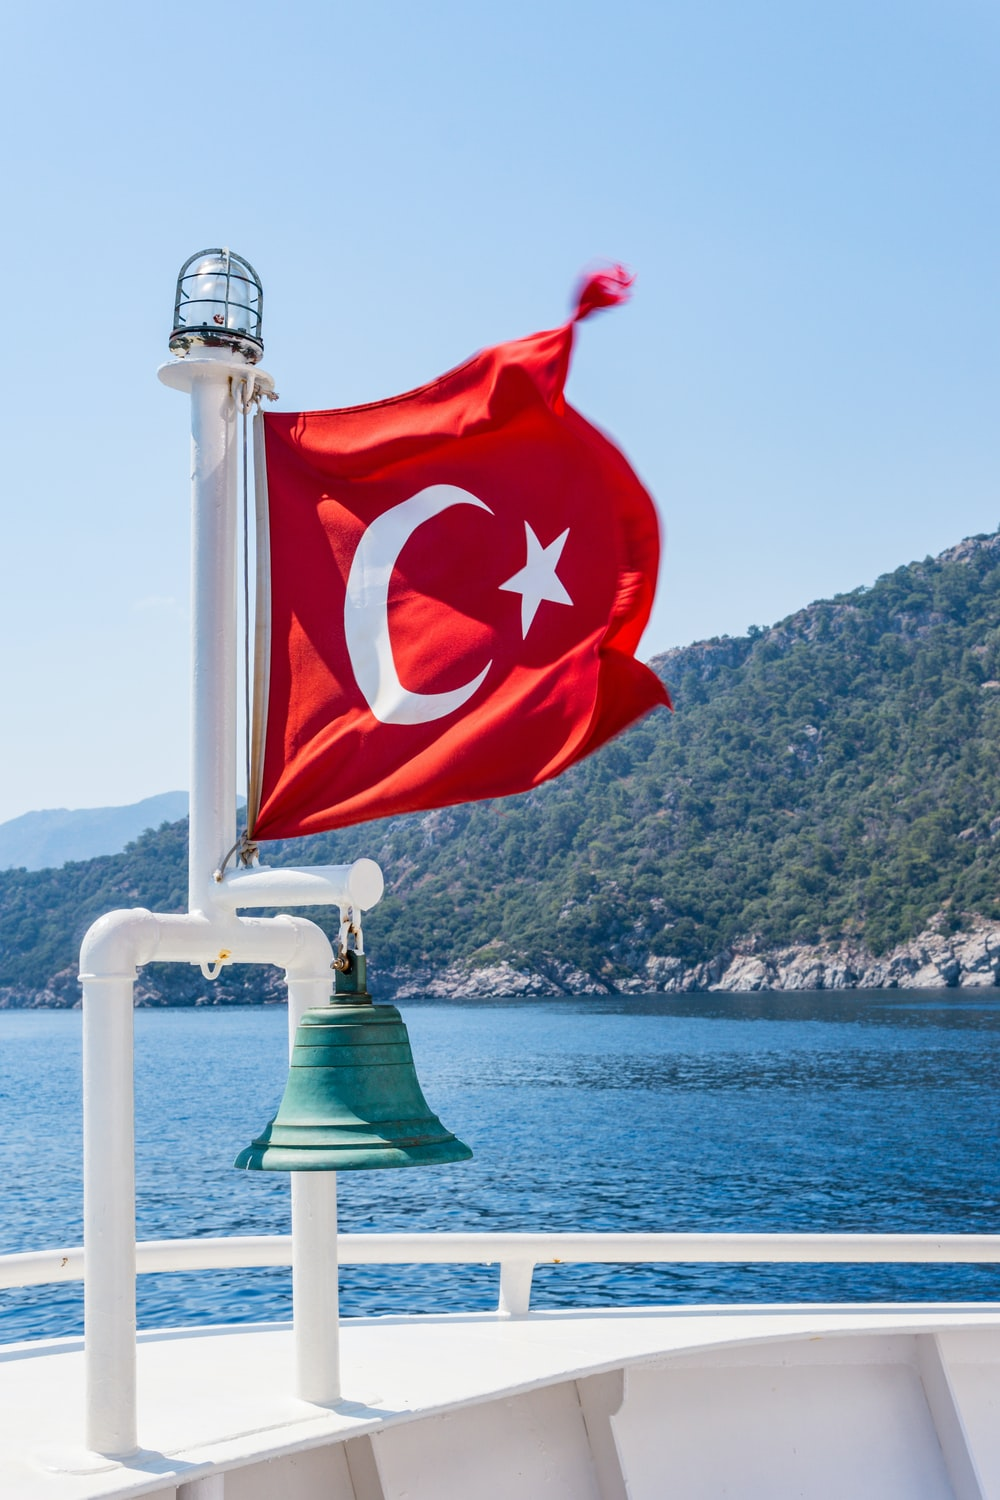 Turkey Pictures Scenic Travel Photos Download Free Images On Unsplash